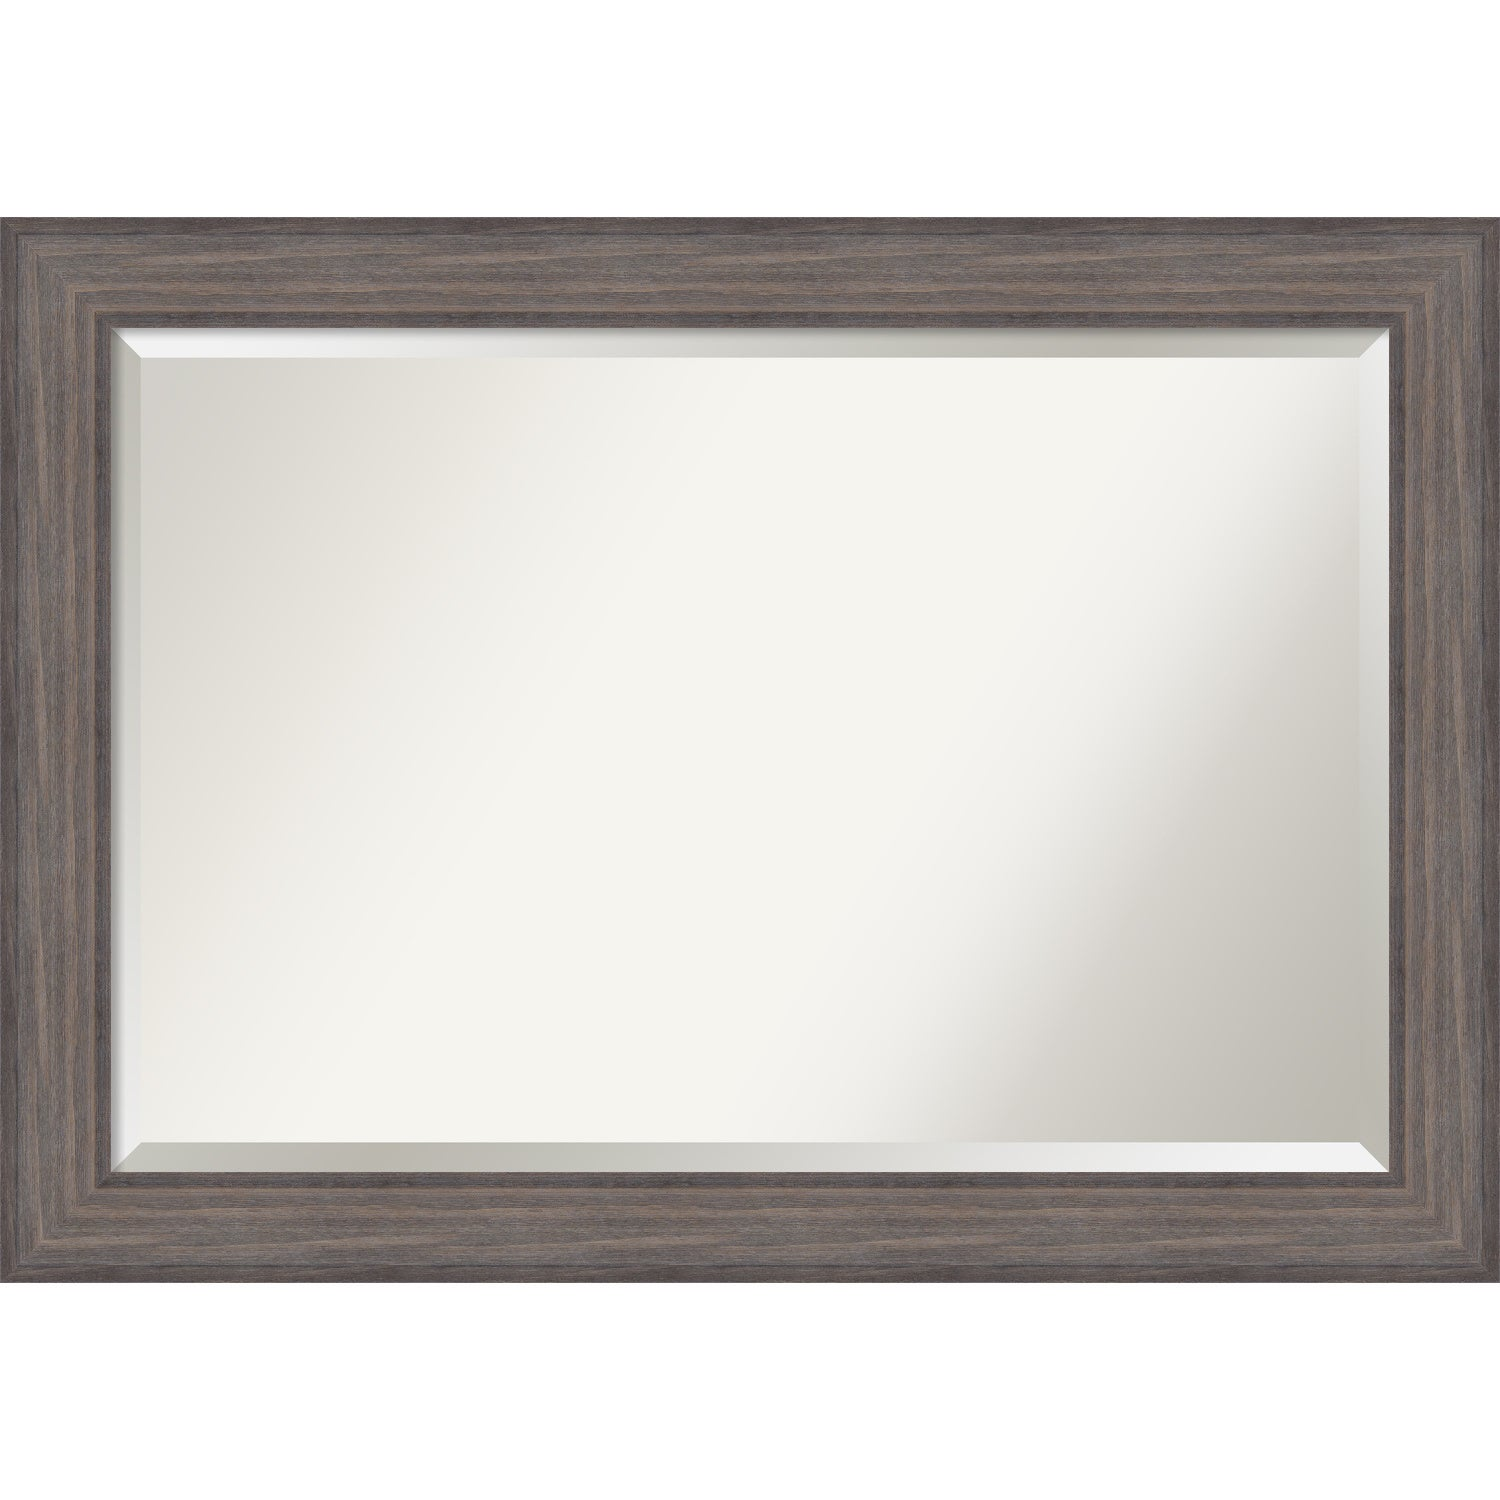 Wall mirror extra large country barnwood 42 x 30 inch grey wall mirror extra large country barnwood 42 x 30 inch grey free shipping today overstock 21827586 jeuxipadfo Image collections